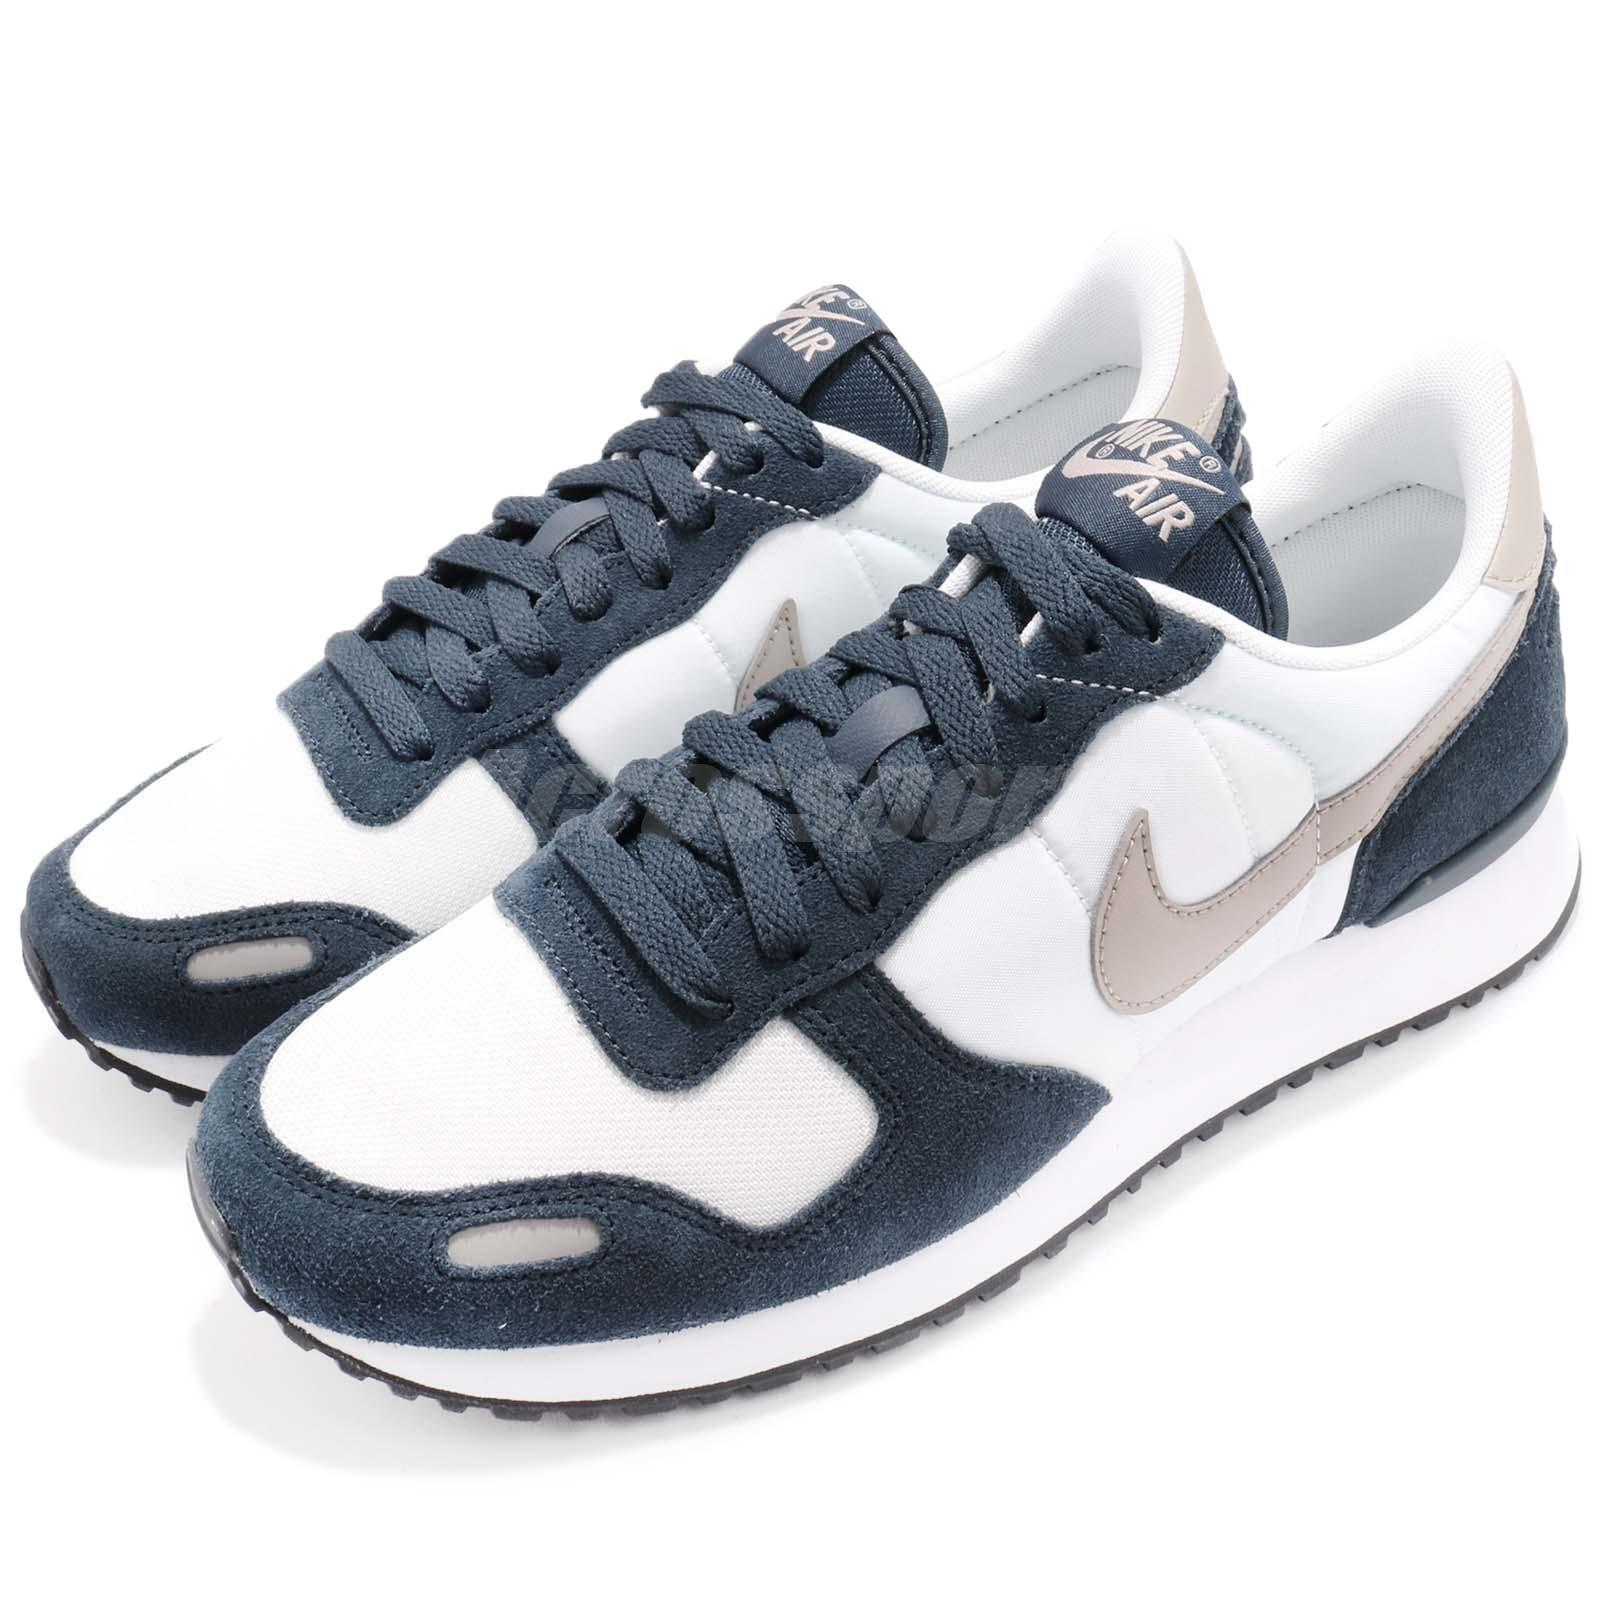 huge selection of ad9a9 ee8ef Details about Nike Air Vrtx Vortex Armory Navy Cobblestone White Men  Running Shoes 903896-400